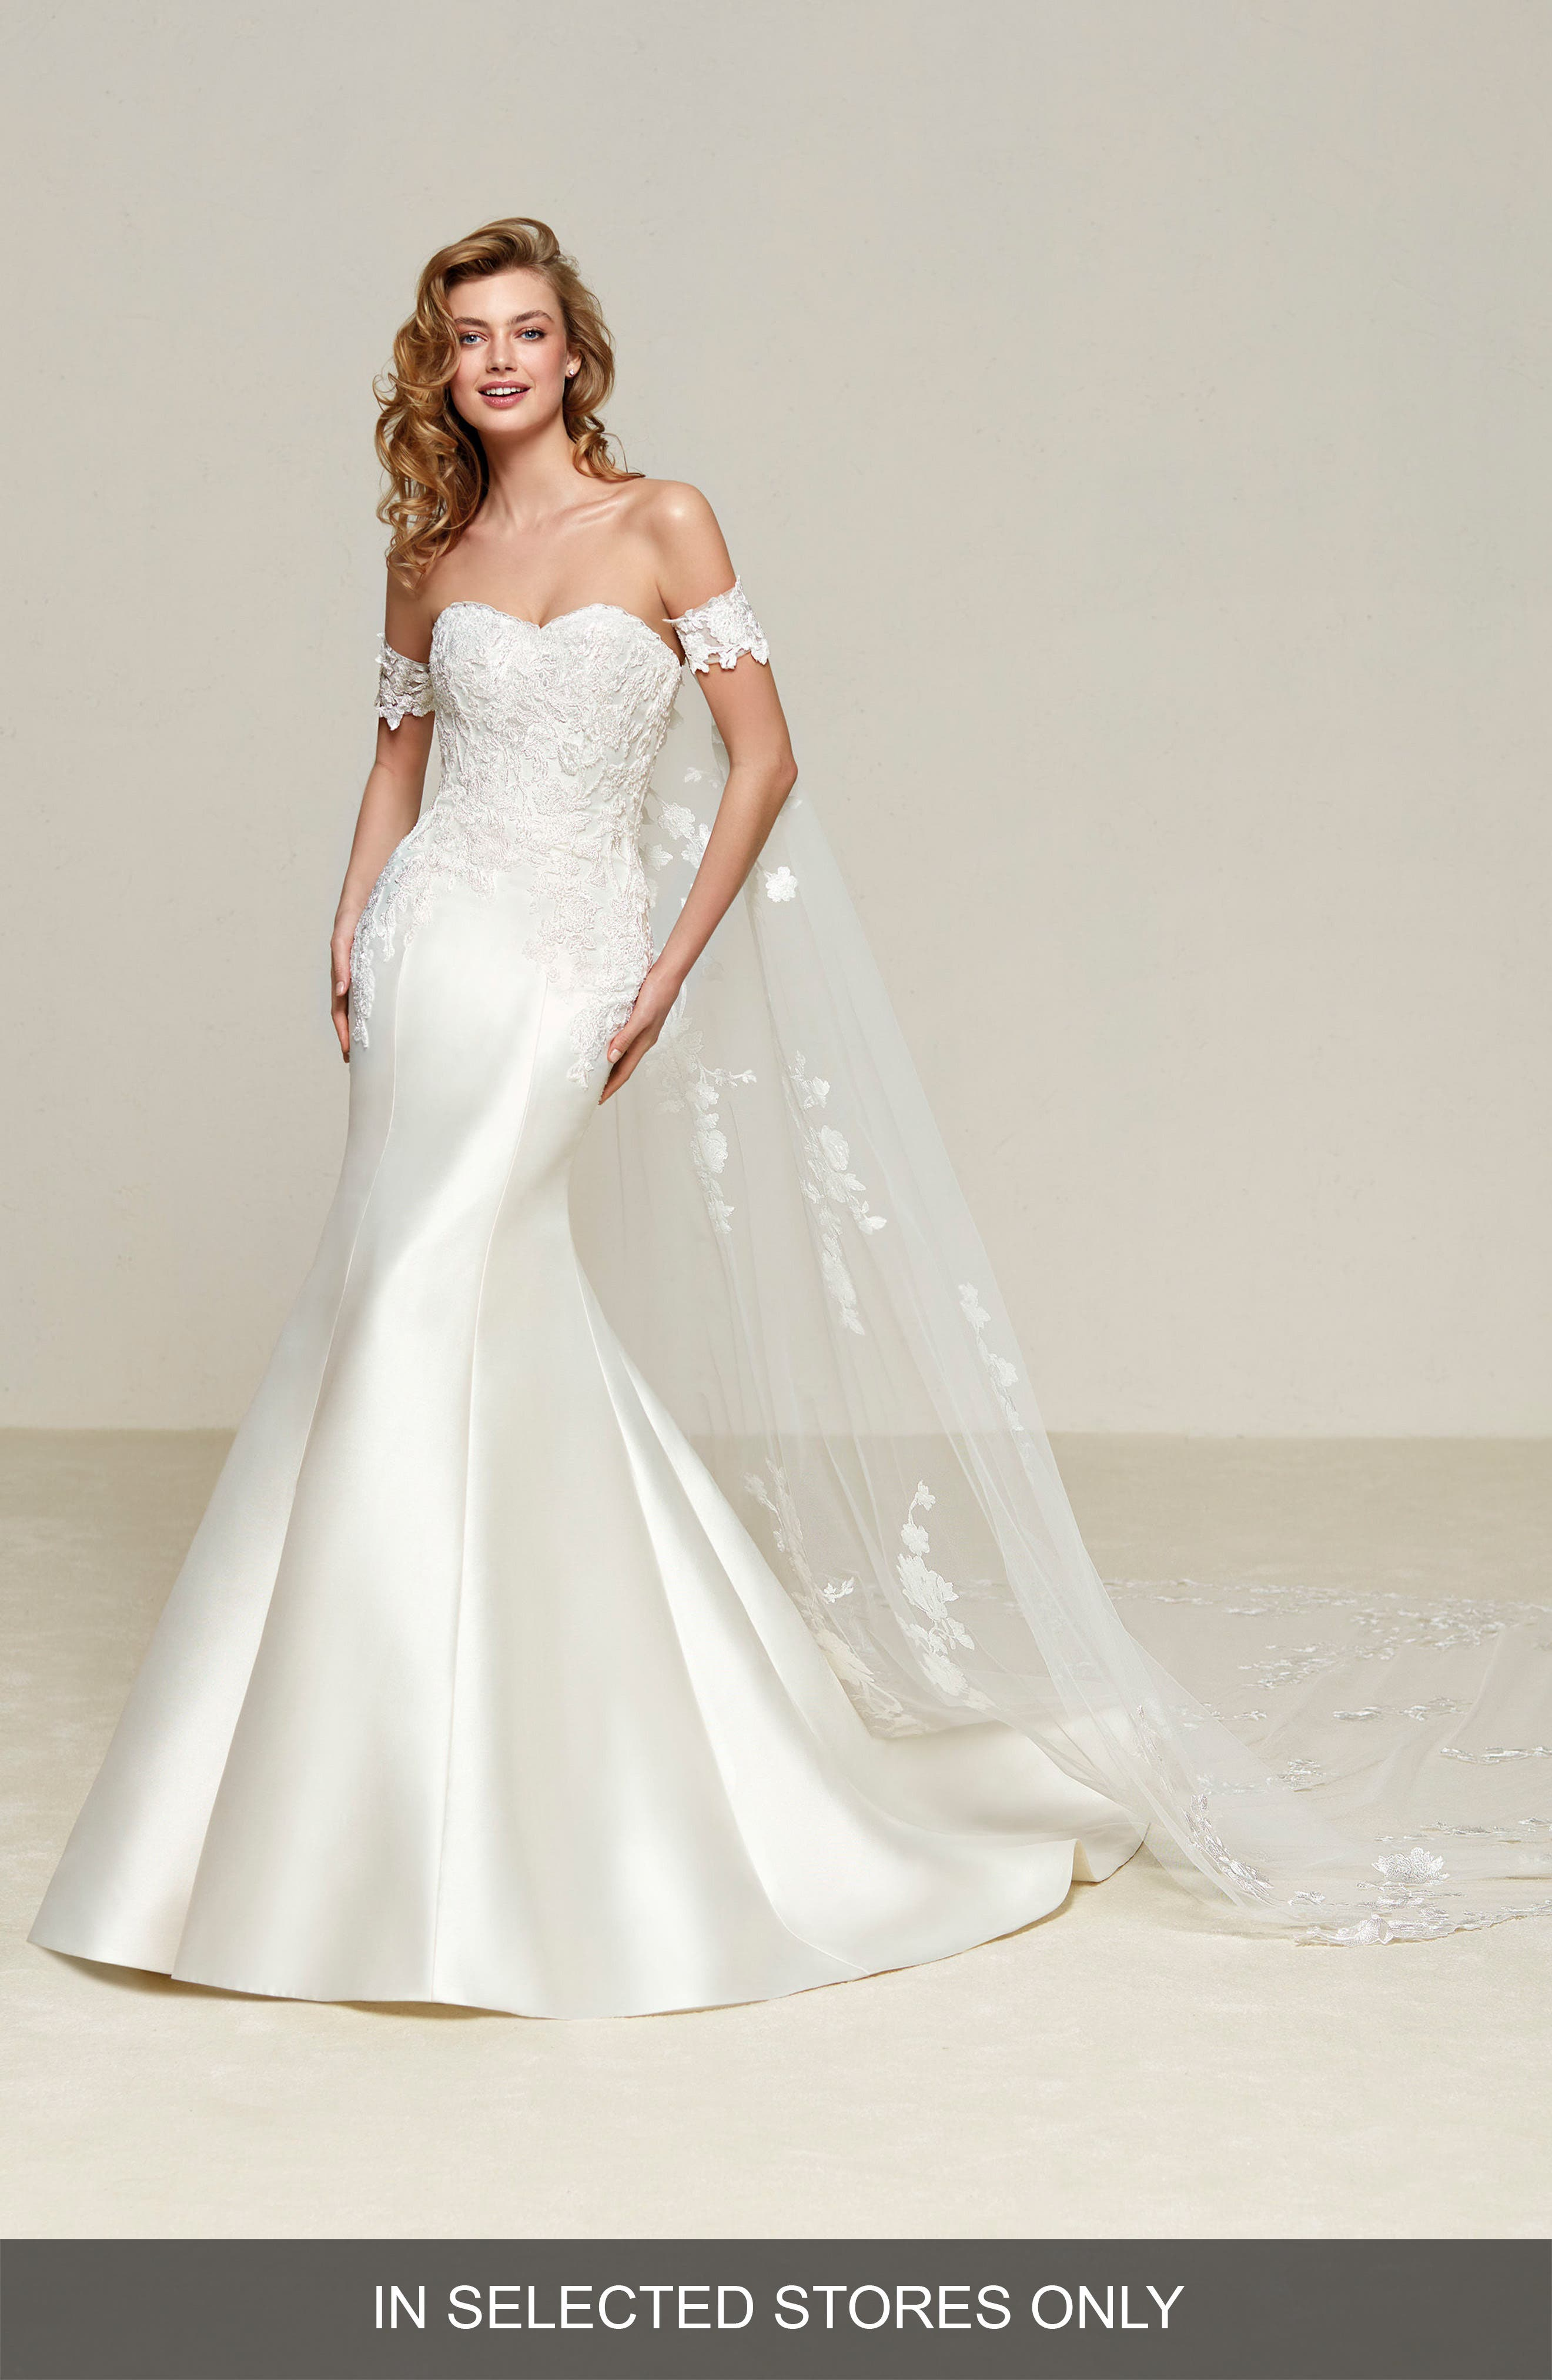 Drileas Strapless Mermaid Gown,                         Main,                         color, Off White